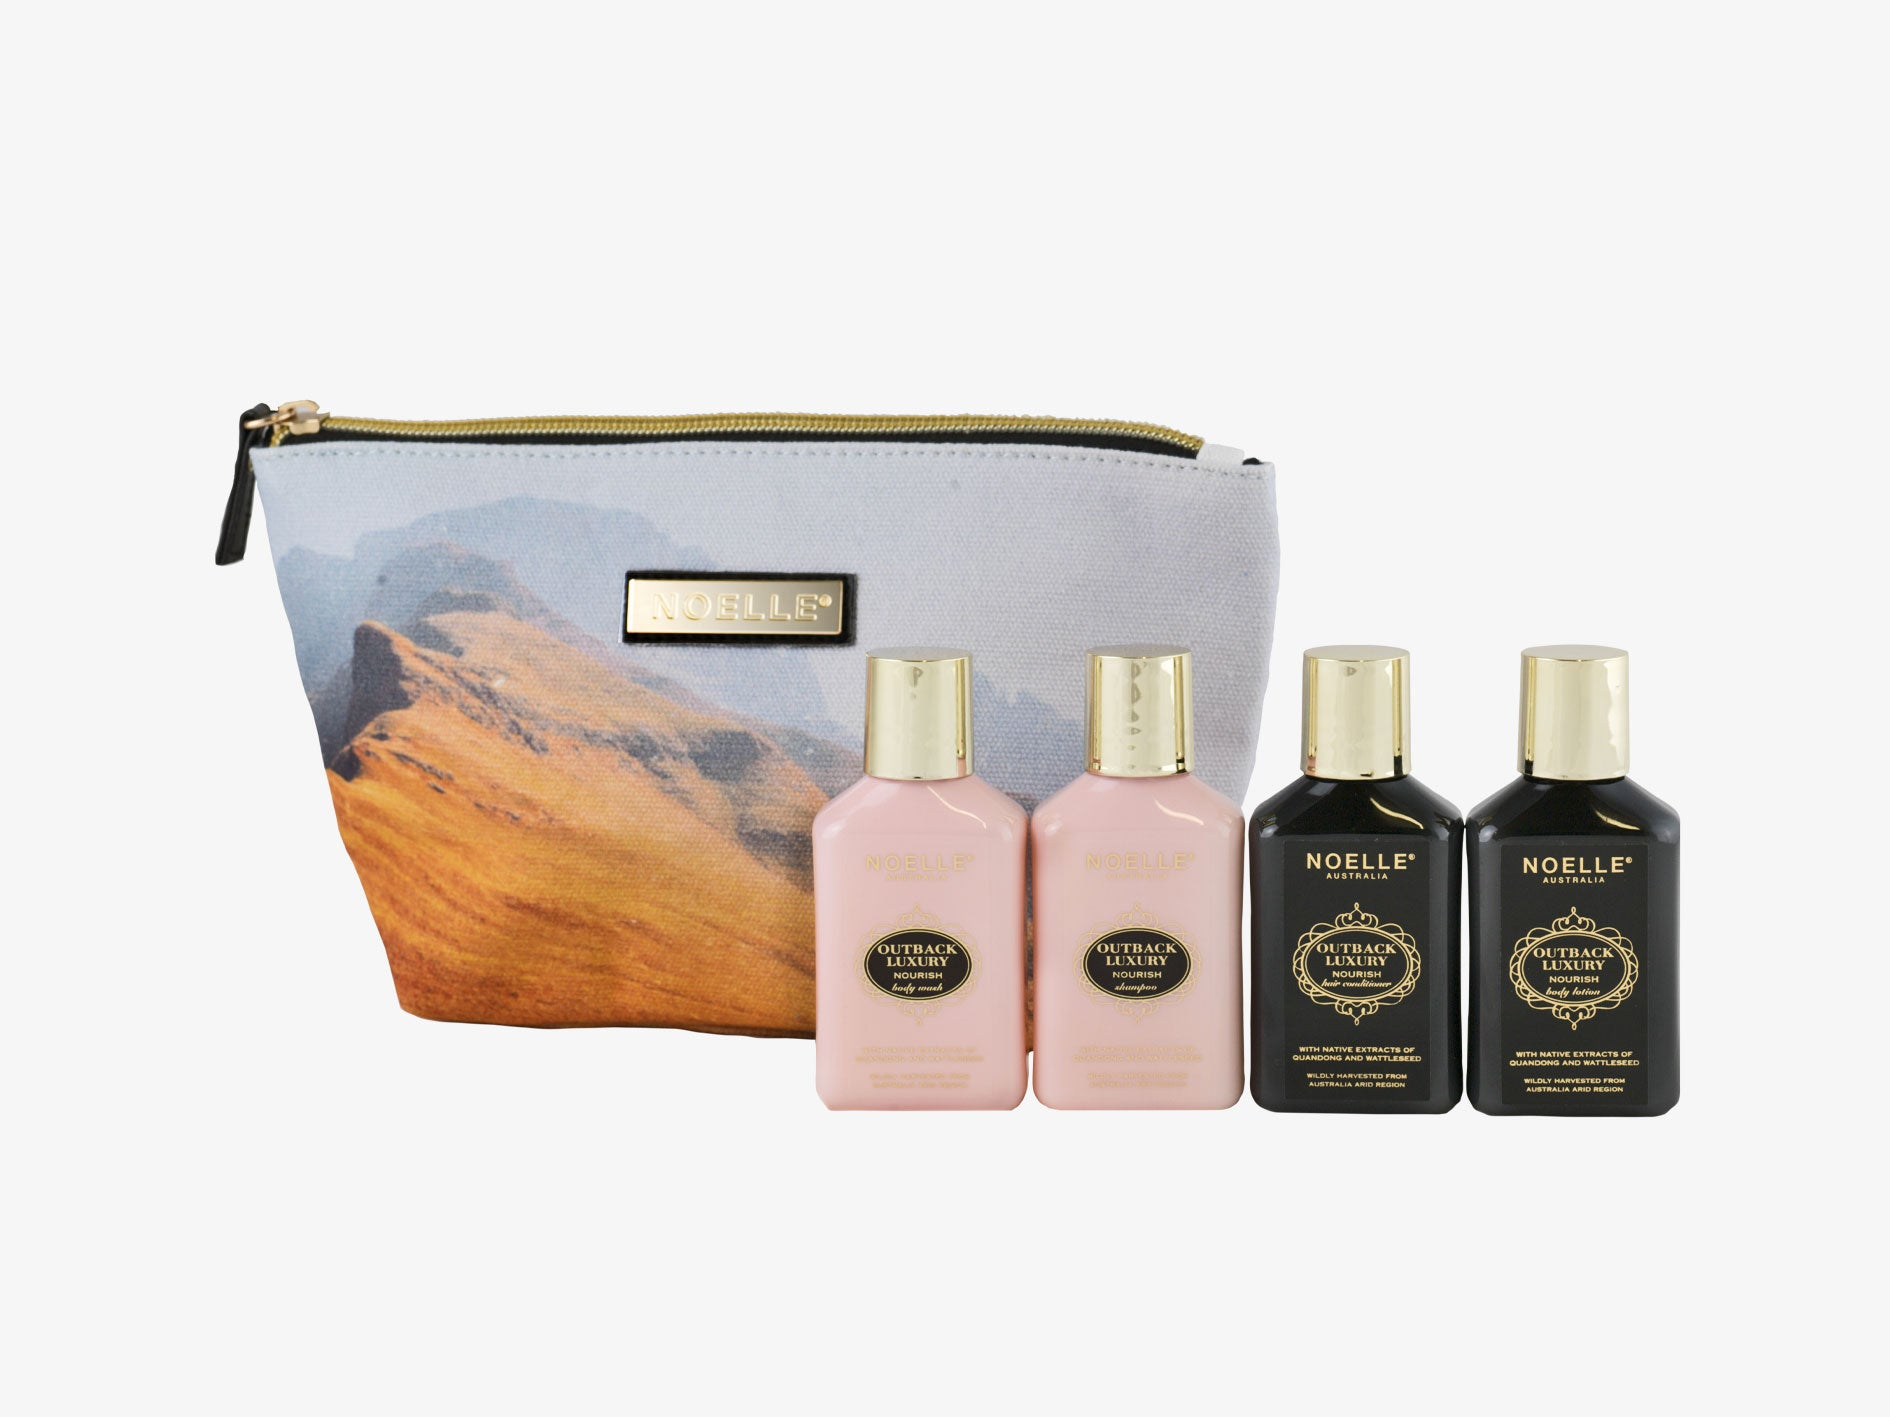 Noelle Australia - Outback Nourish Travel Set